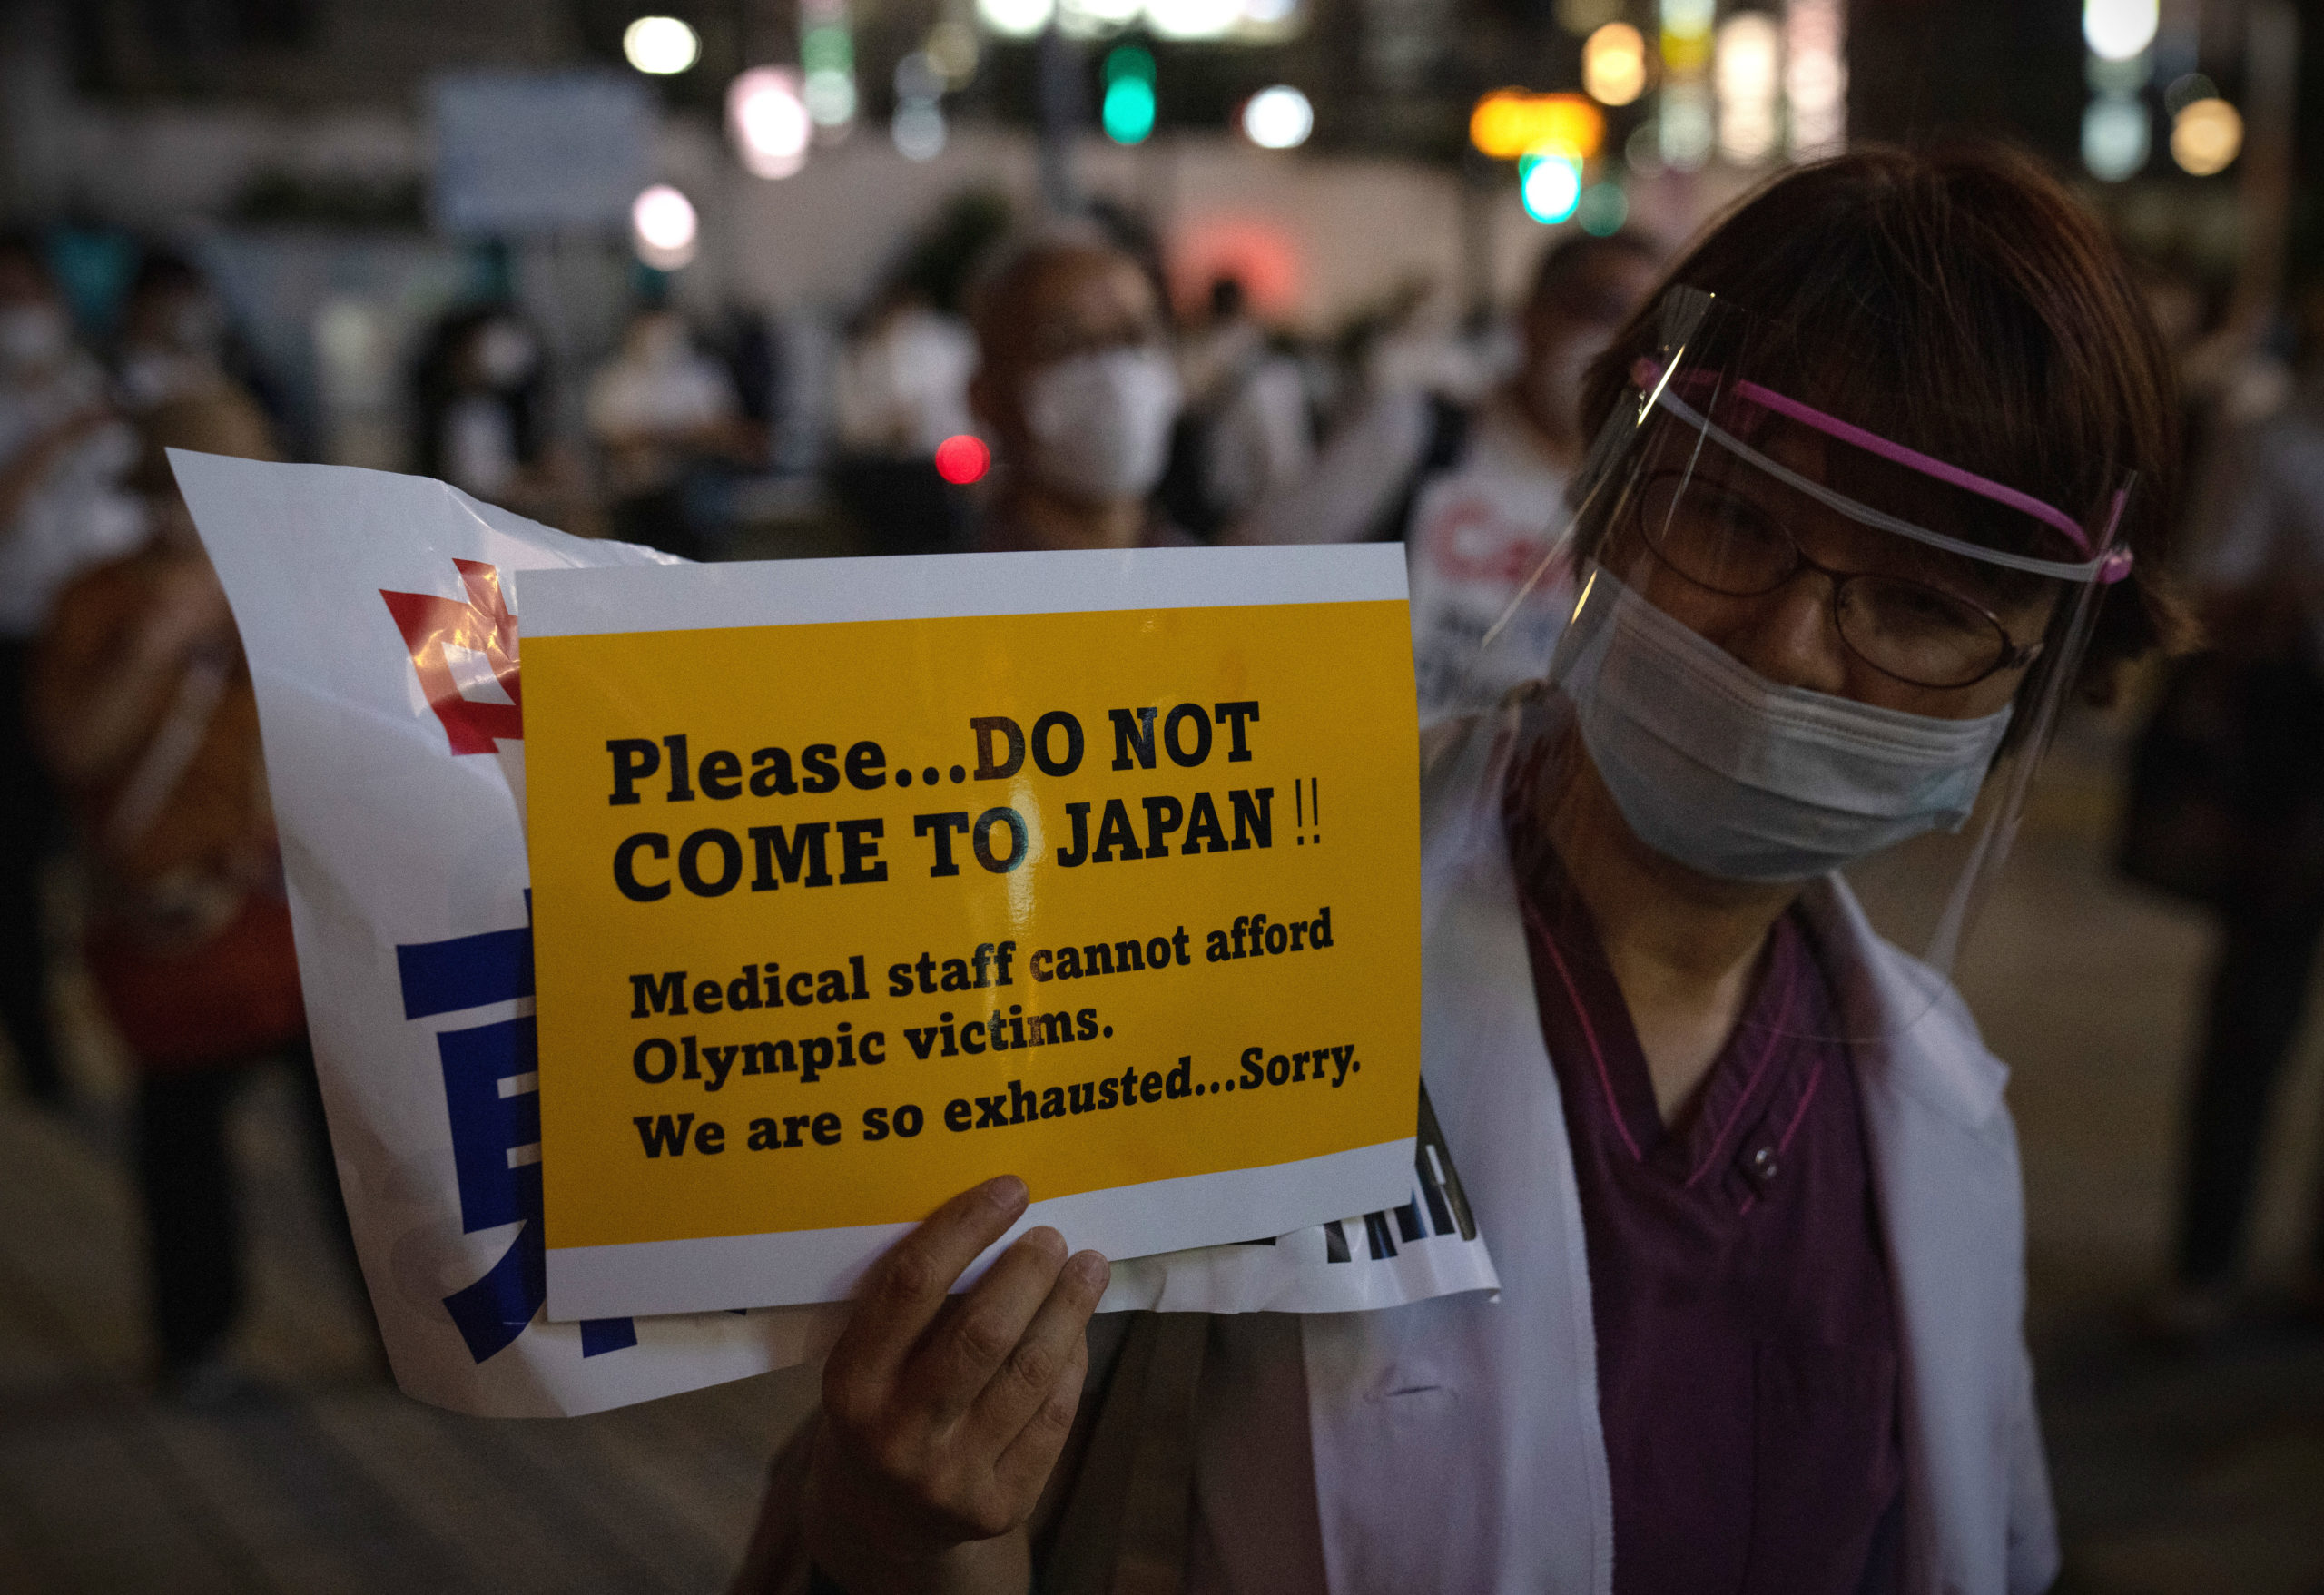 A doctor holds up a poster asking people not to come to Japan for the Olympics during a protest against the Olympic Games on June 23, 2021 in Tokyo, Japan. Protests have continued to take place in the run up to the Olympics amid concern over the safety of holding the Games during the global coronavirus pandemic. (Photo by Carl Court/Getty Images)